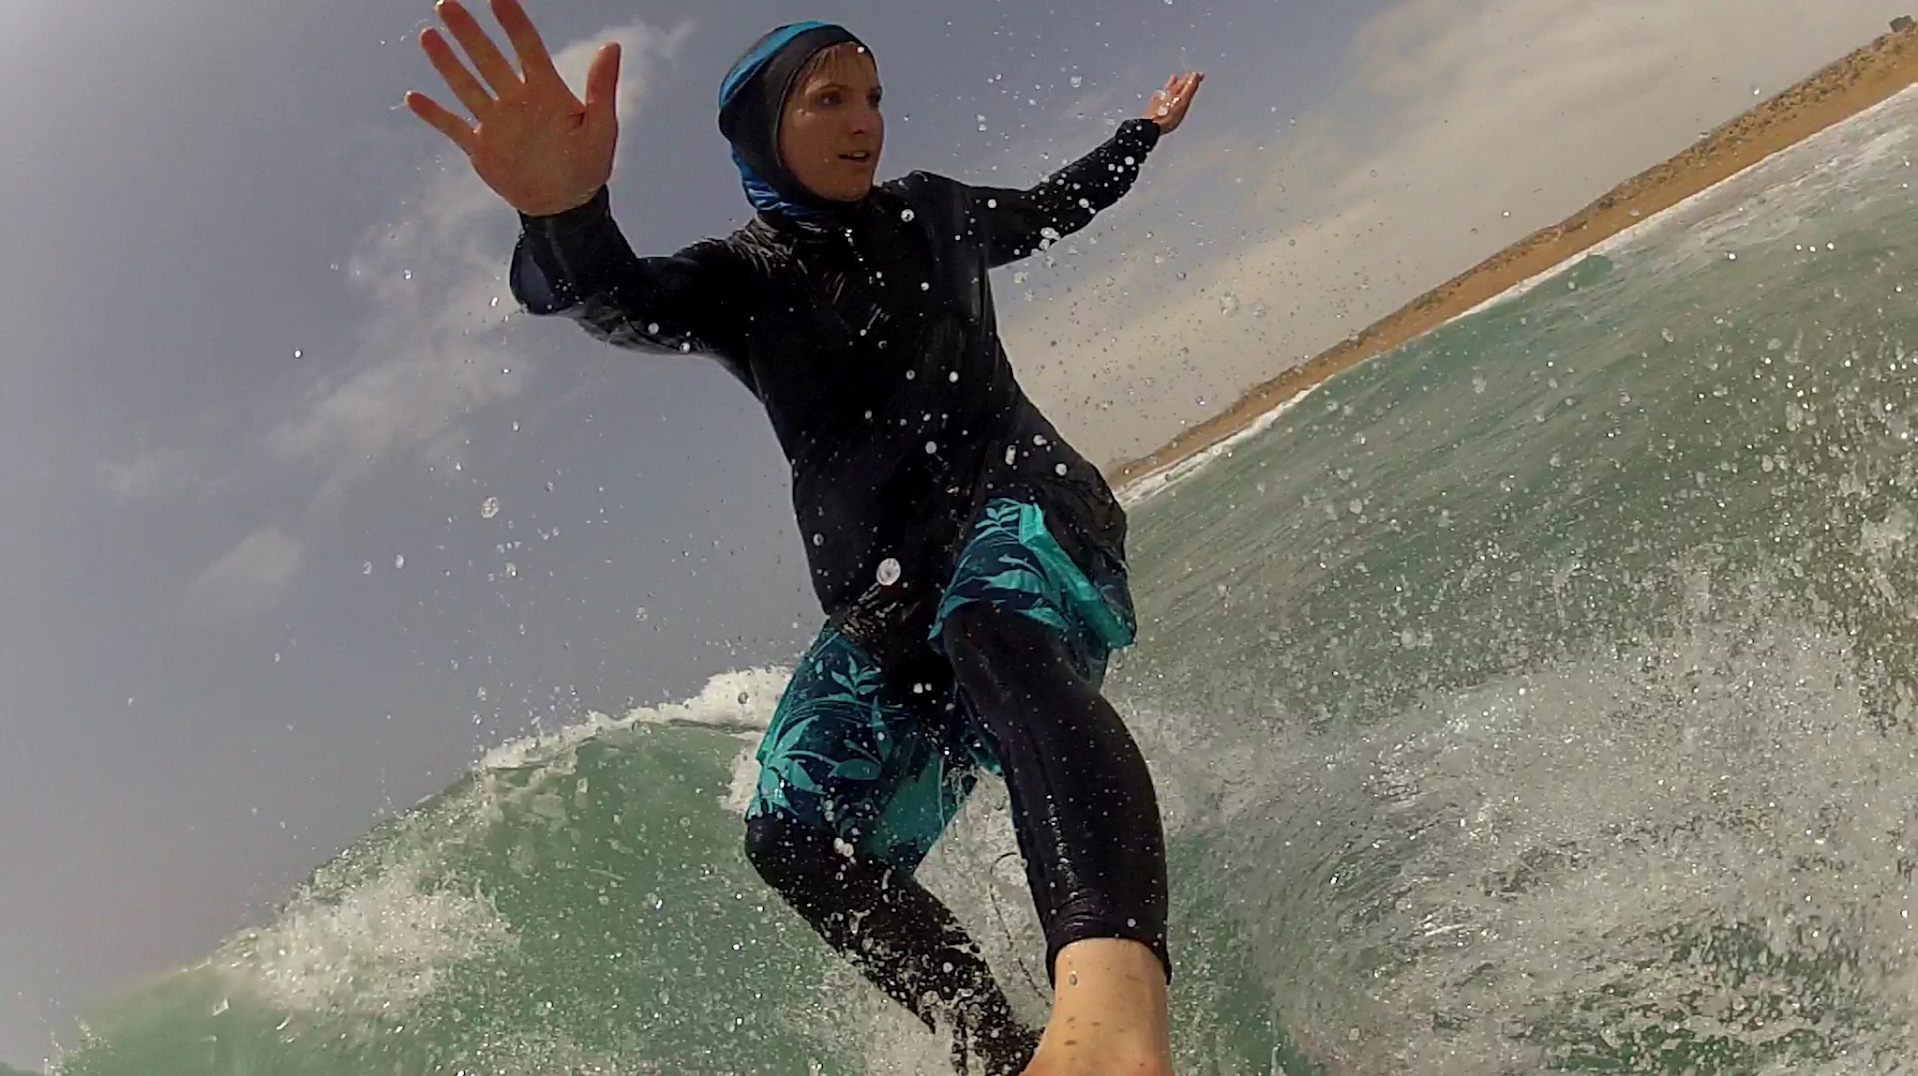 Easkey Britton surfing in a hijab, in Iran, fall 2014. Britton's initiative, Waves of Freedom, empowers young girls from local communities throughsurfing. Image: Marion Poizeau.